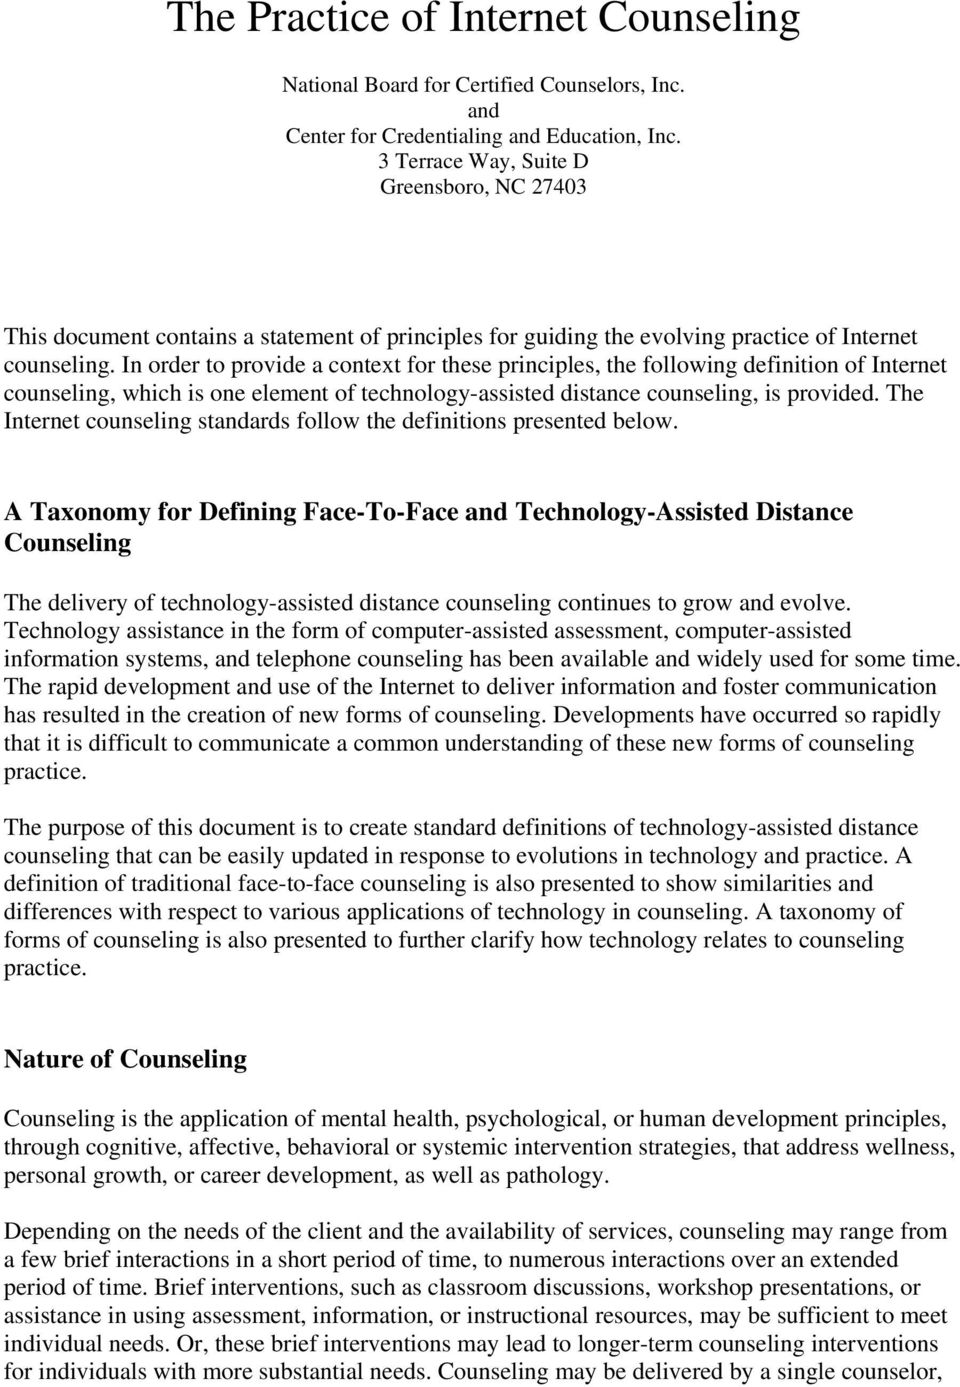 In order to provide a context for these principles, the following definition of Internet counseling, which is one element of technology-assisted distance counseling, is provided.